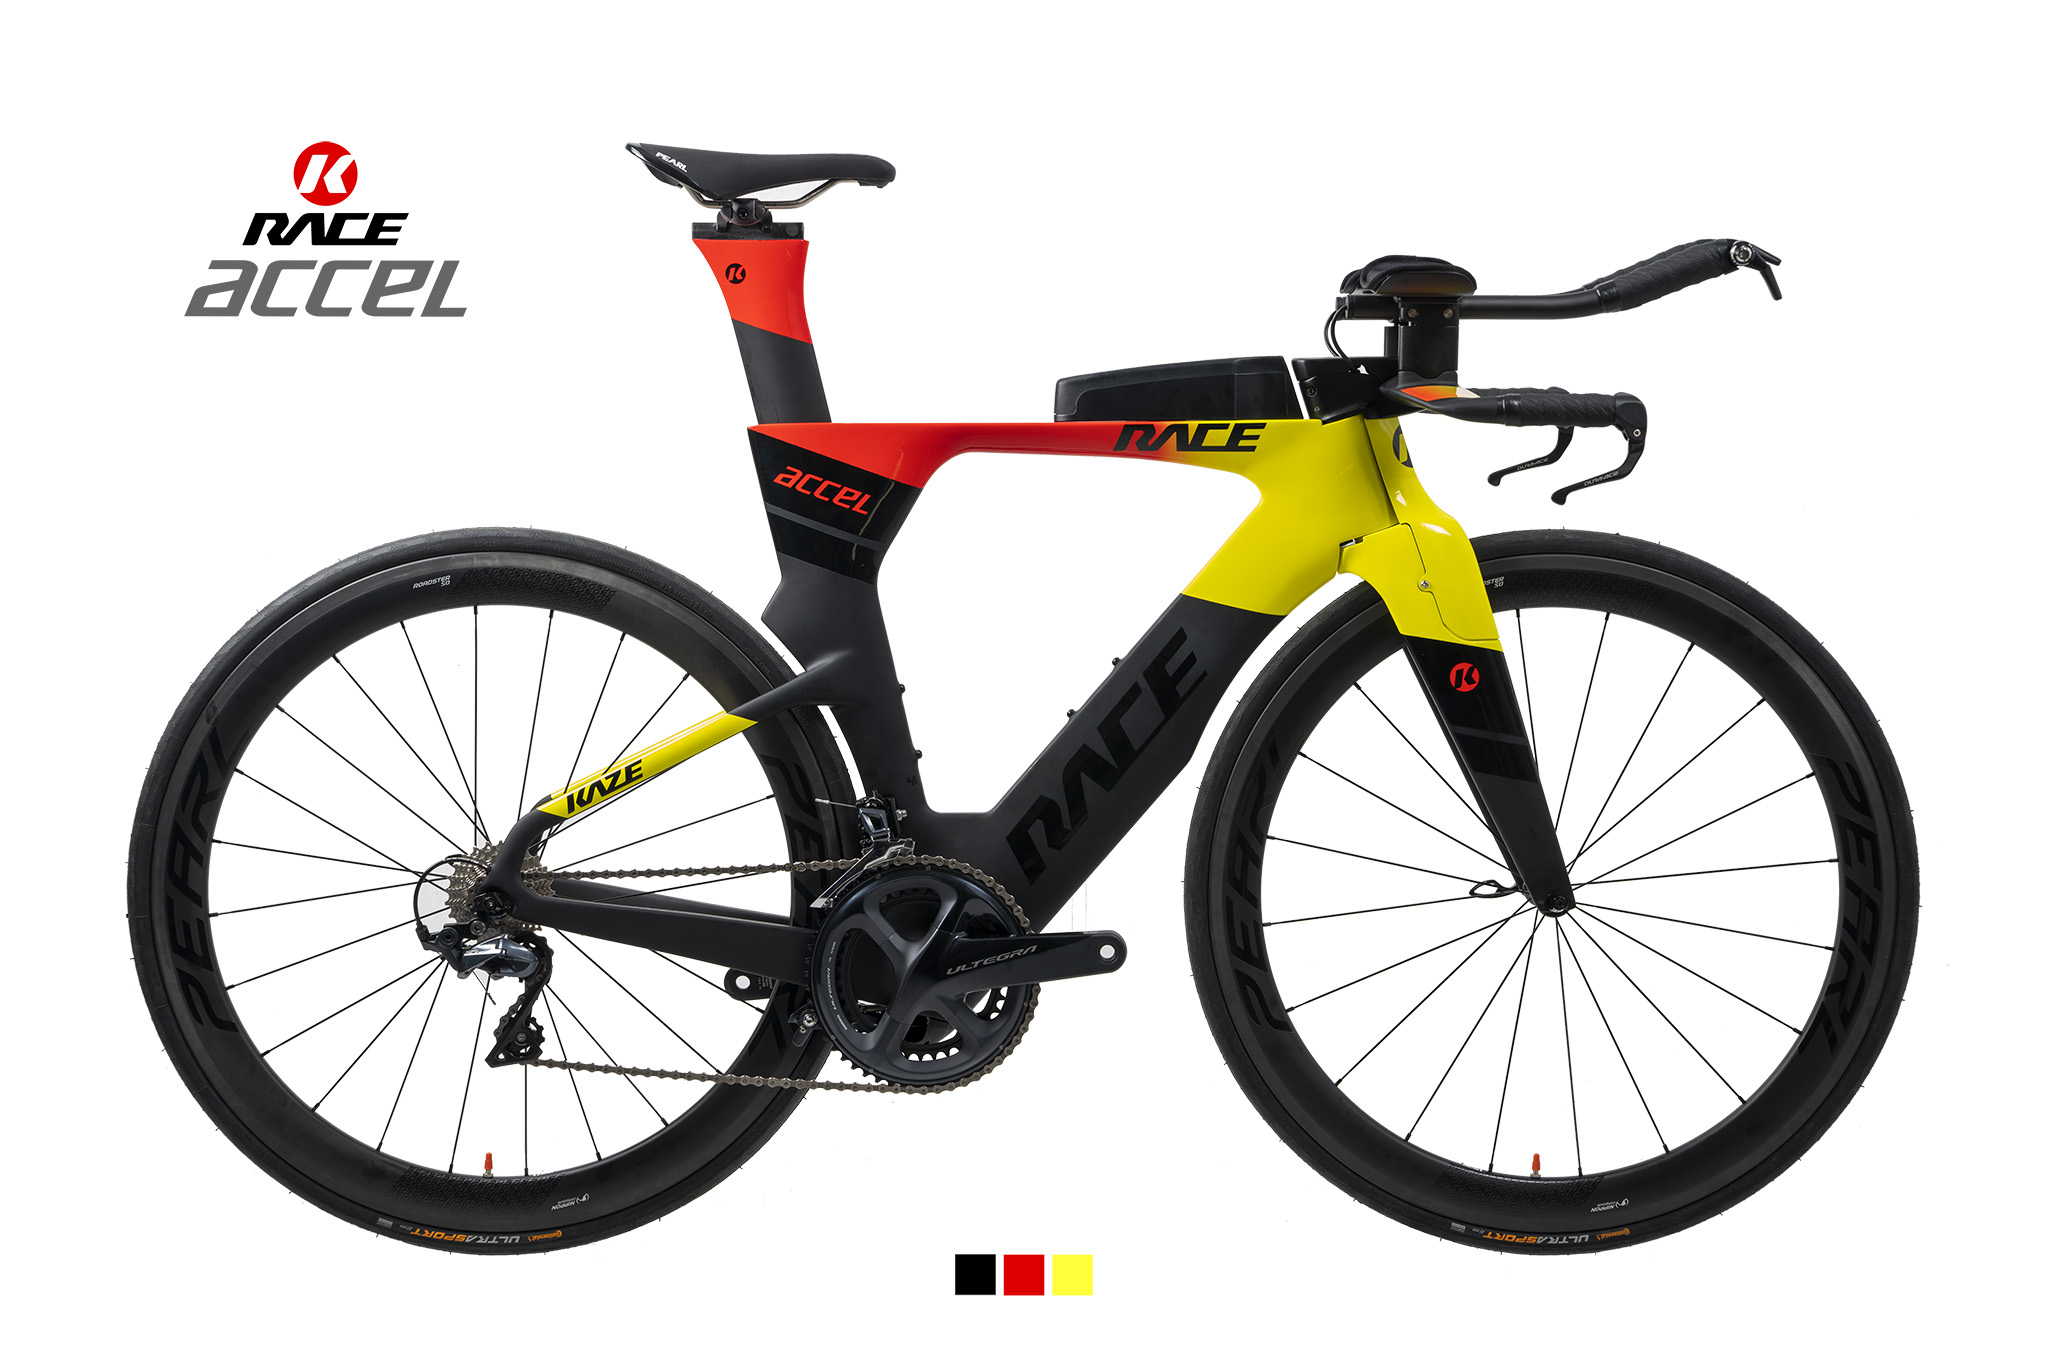 TT / Triathlon Bike